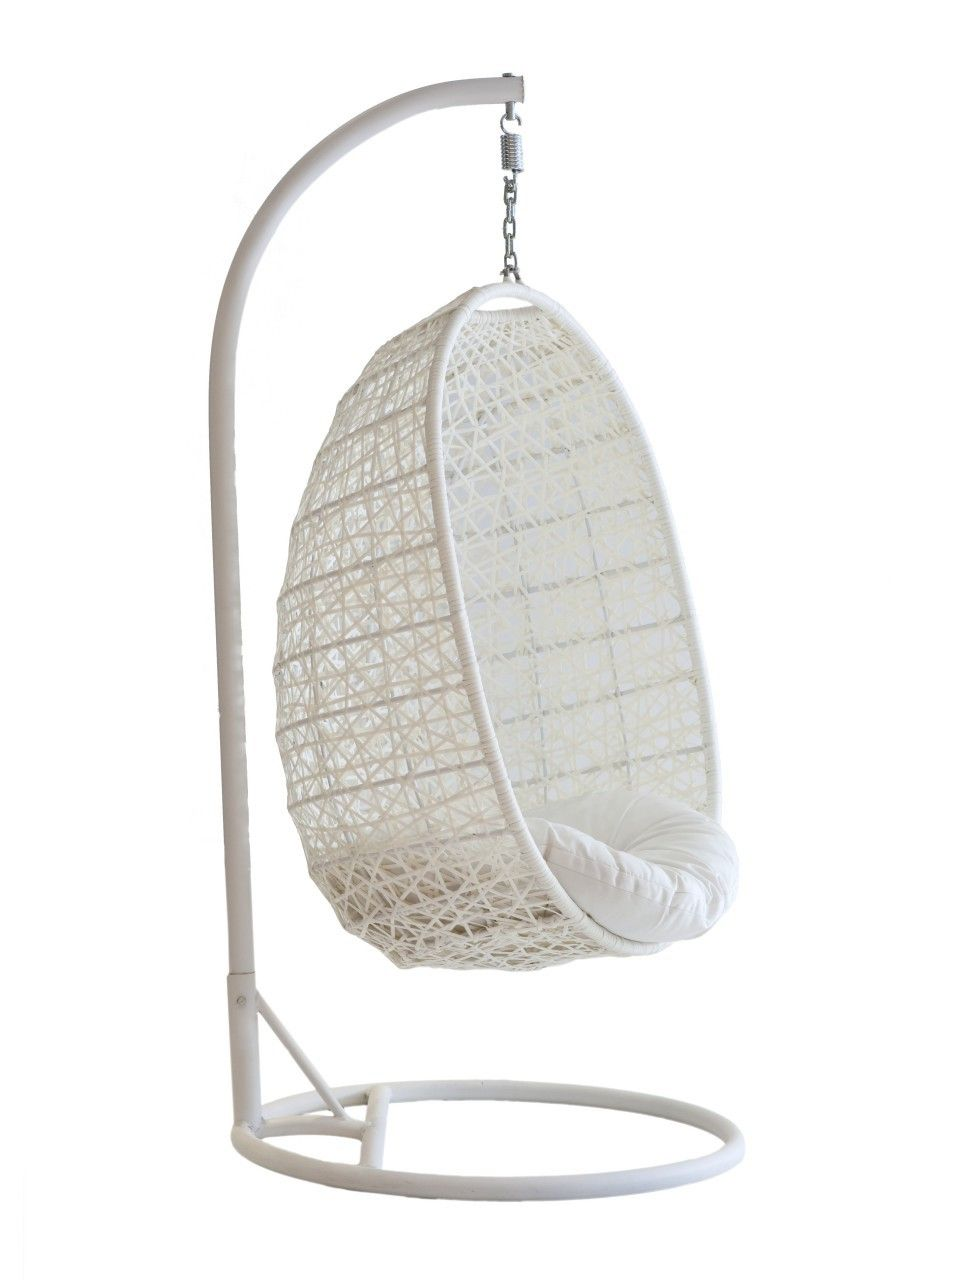 Furniture Charming White Viva Design Cora Hanging Chair Design